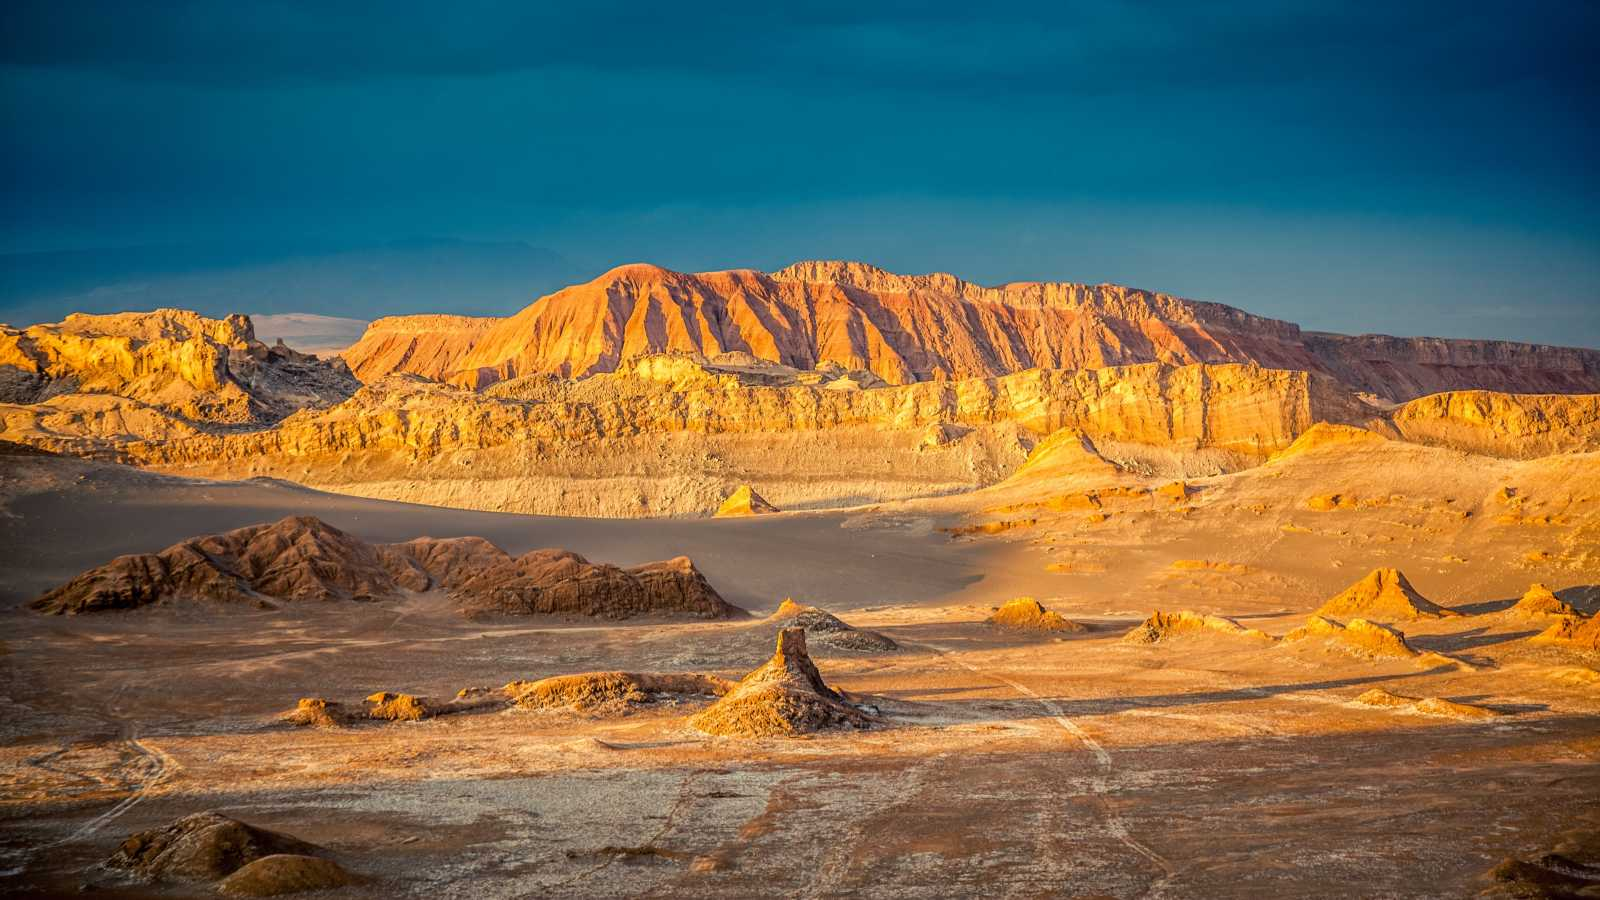 South America, Chile, San Pedro de Atacama, a view of Valle de la Luna in the long shadows of the afternoon with a blue sky in the background.